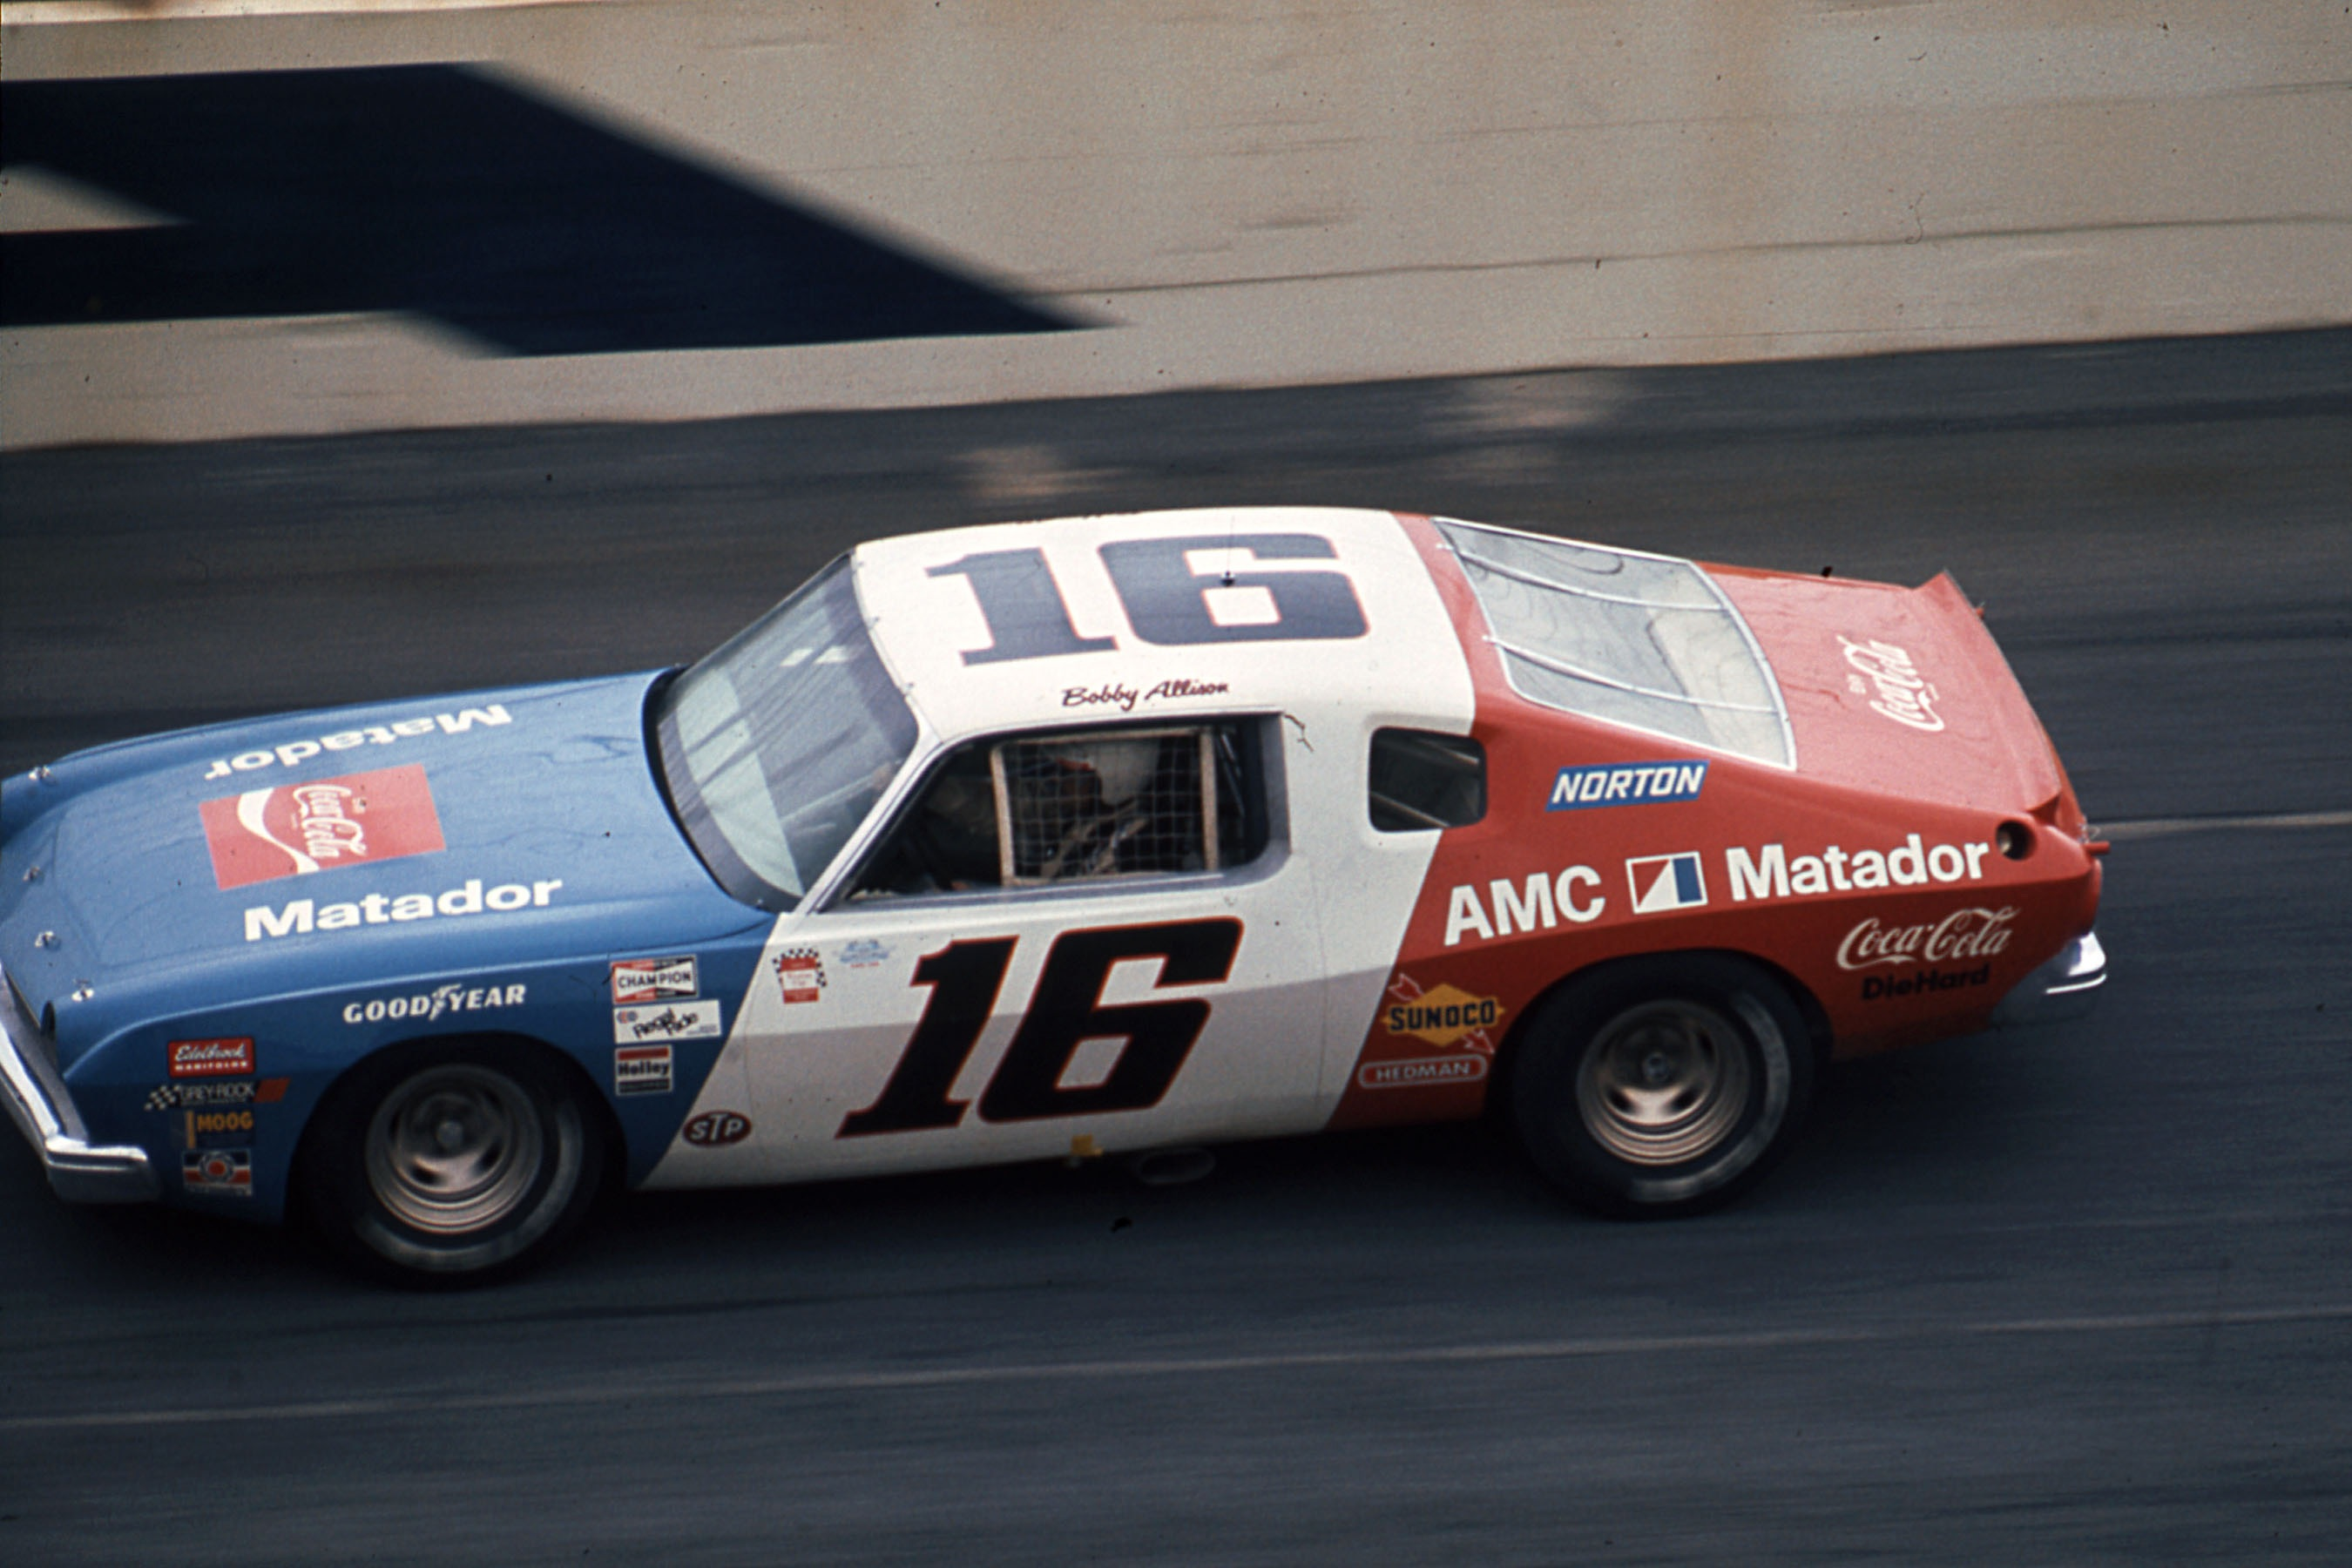 12 Wild and Wonderful NASCAR Oddities